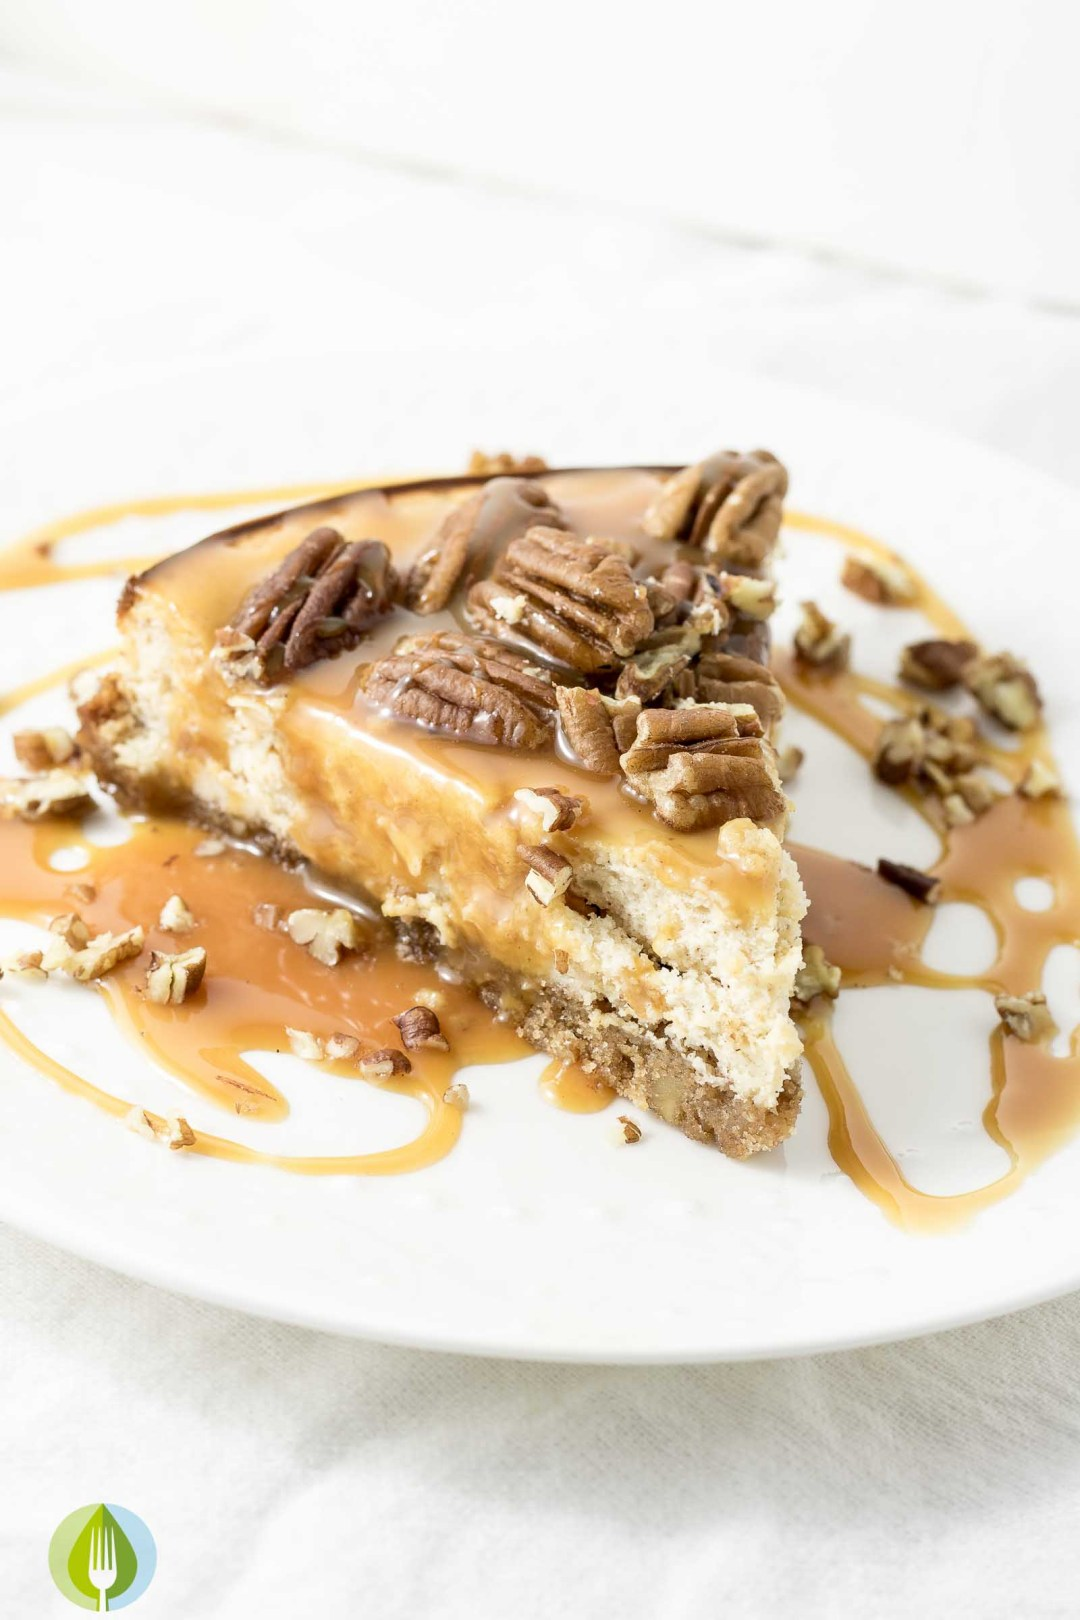 Spiced Whisky Pecan Pie Cheesecake - one slice on a plate with caramel sauce and pecans